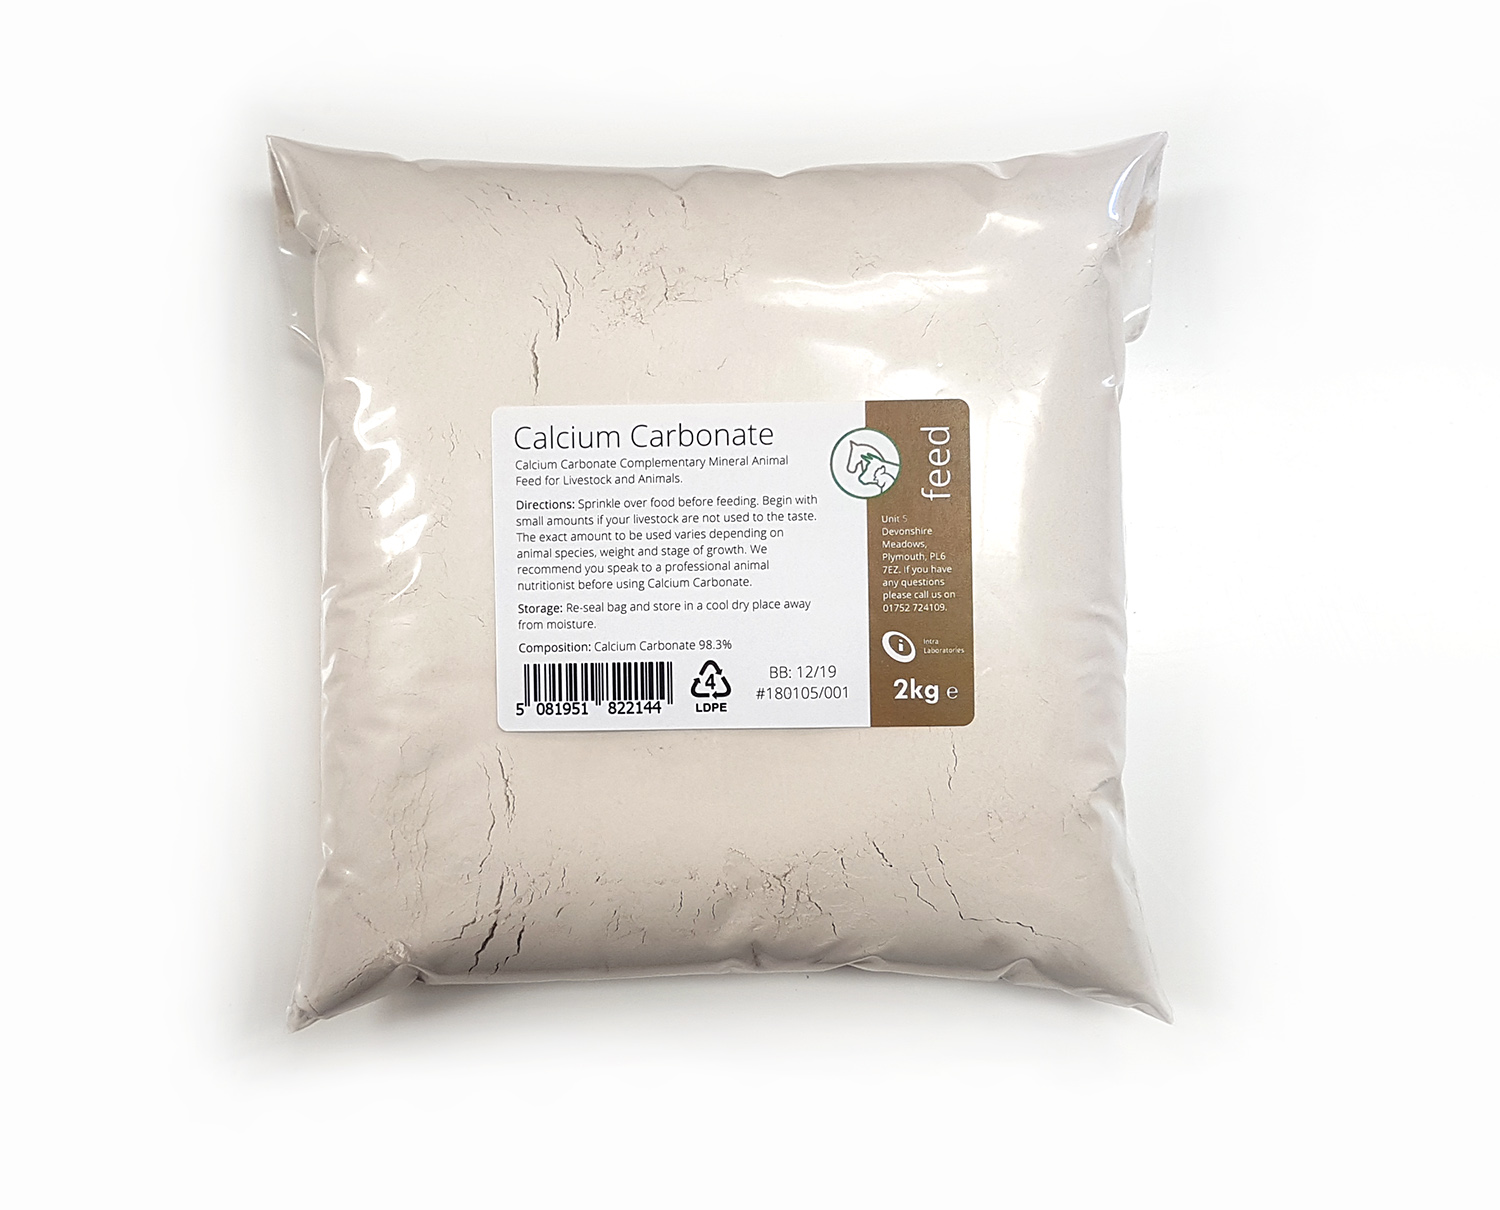 2kg - Calcium Carbonate